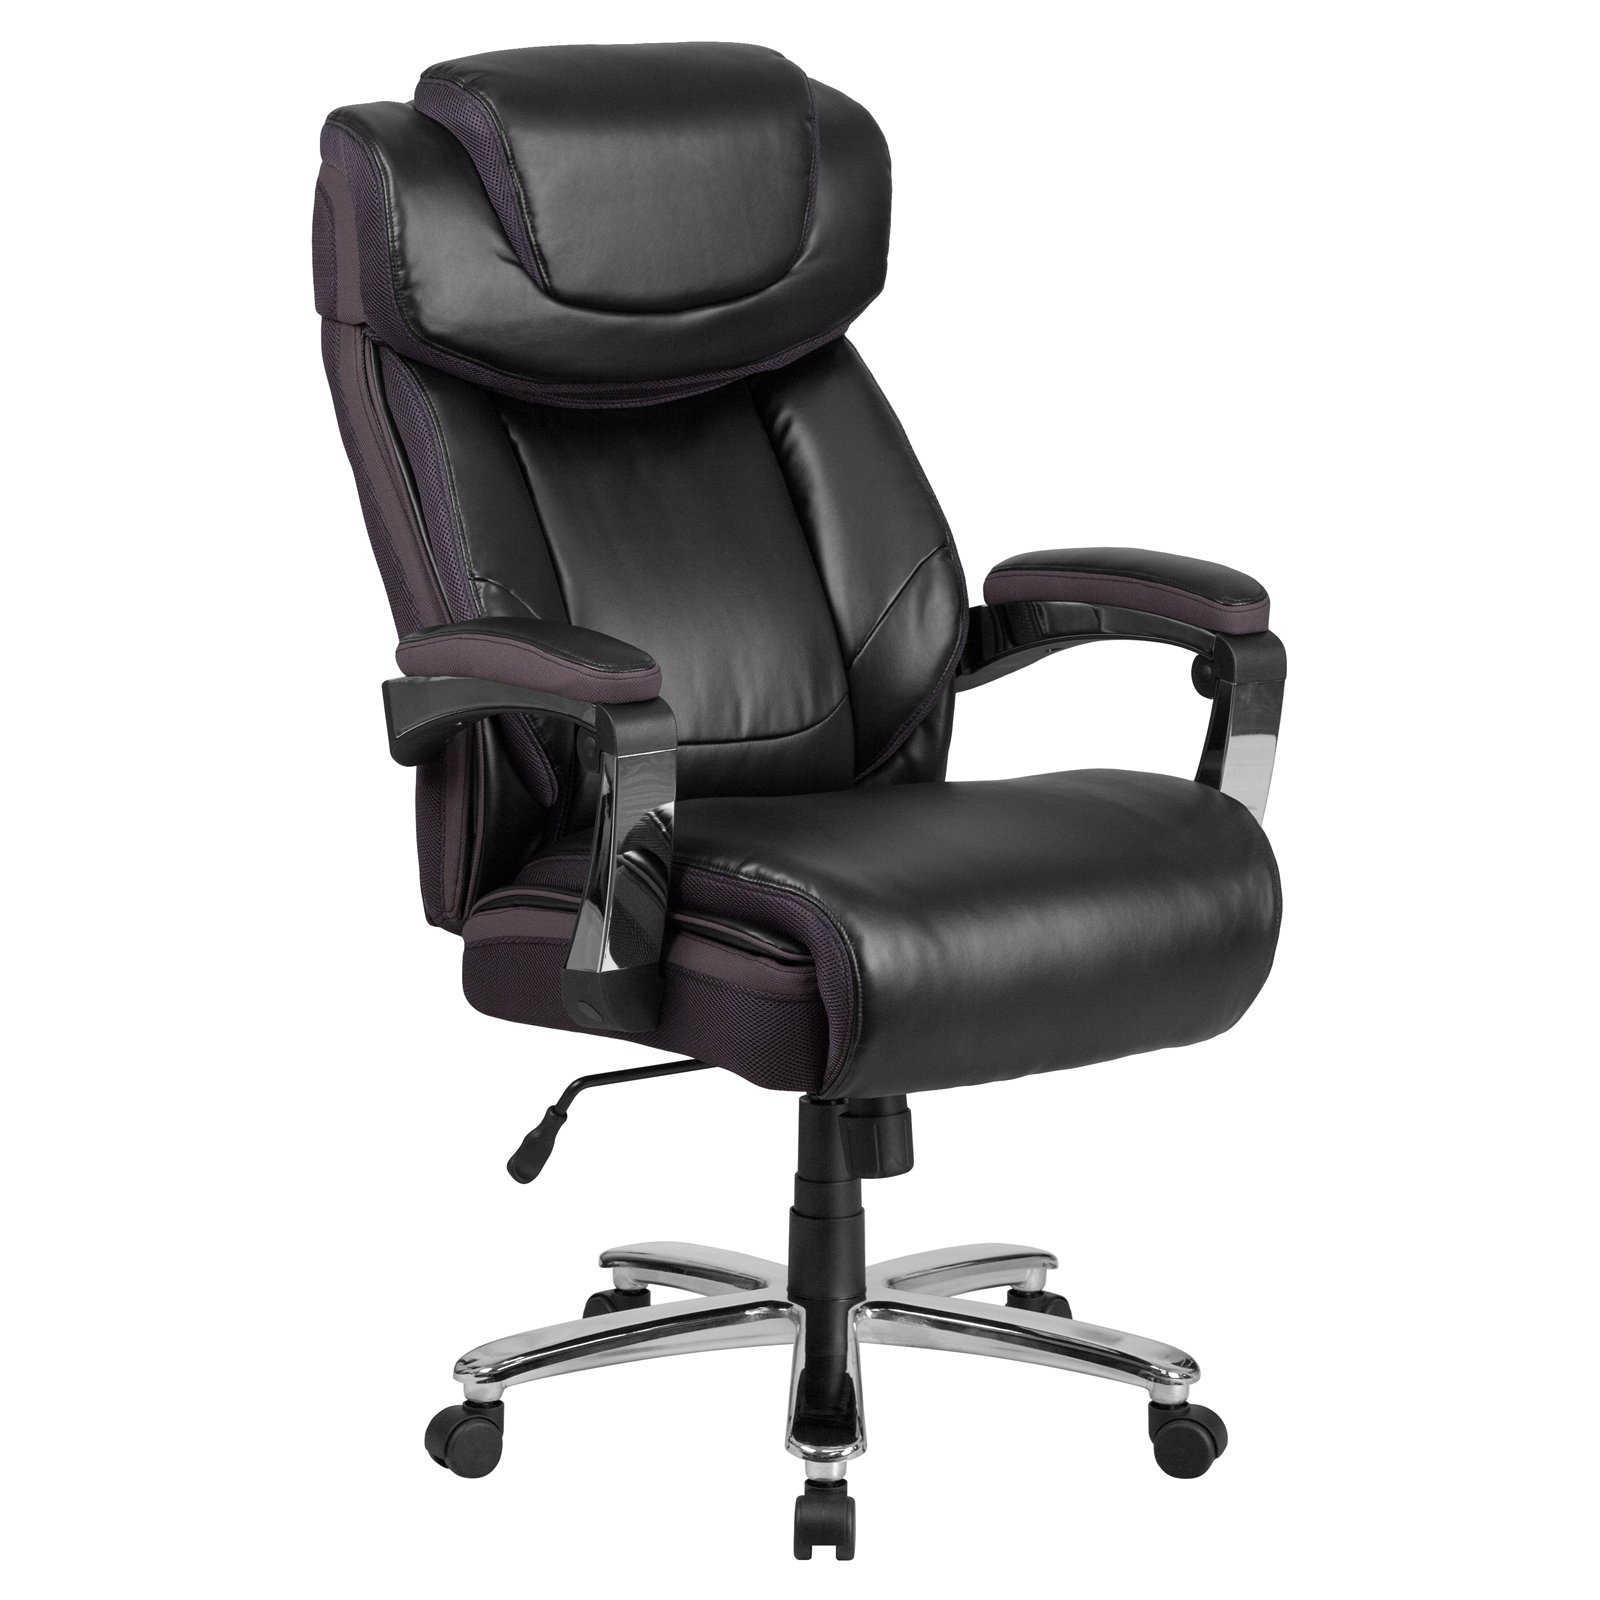 swivel office chair with wheels cafeteria tables chairs attached flash furniture hercules series 500 lb capacity big tall black leather executive height adjustable headrest walmart com